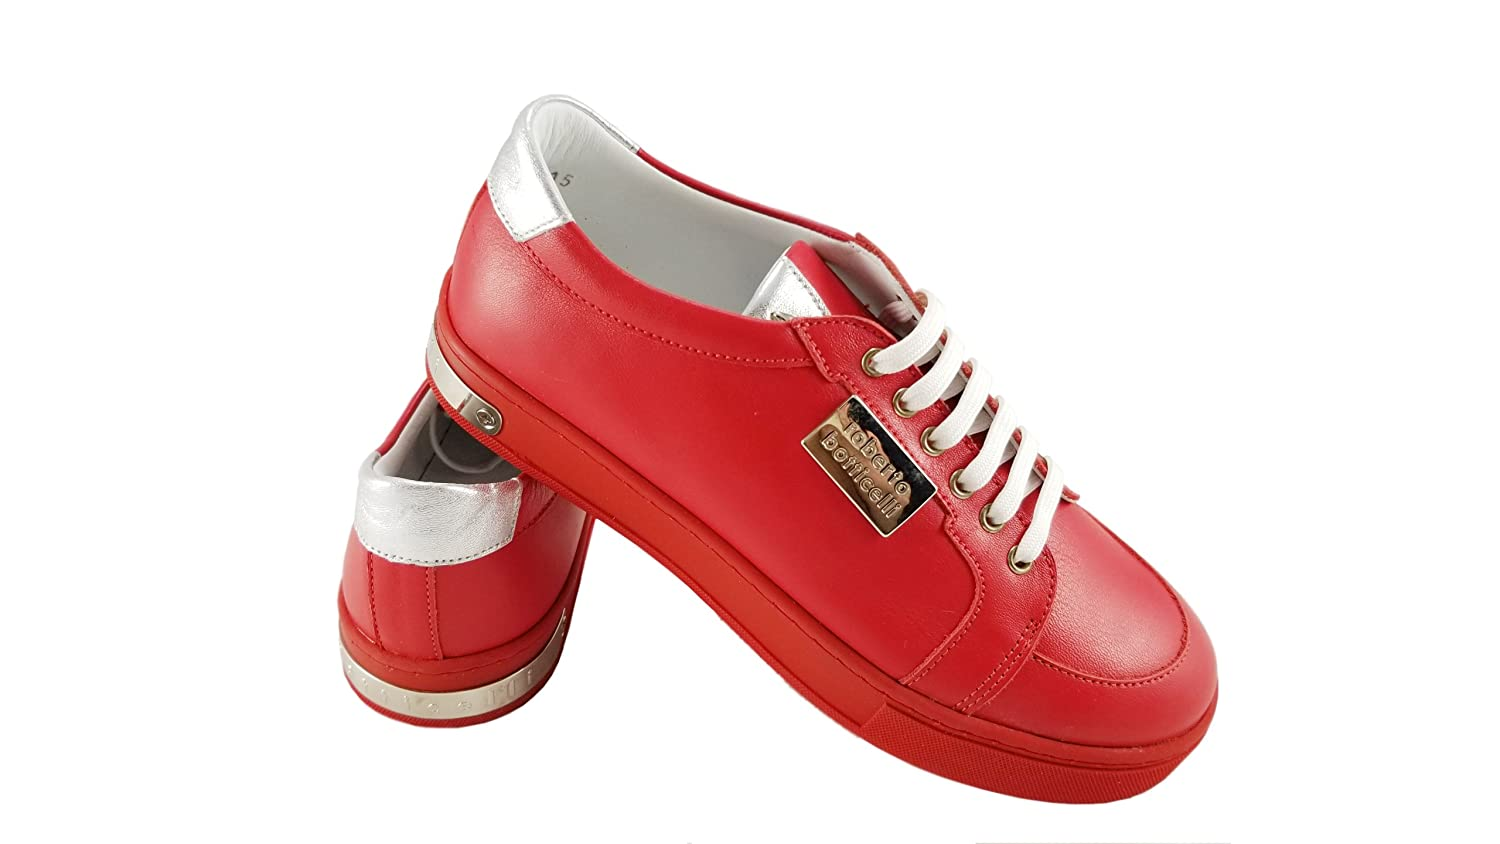 Roberto Botticelli Limited Boys//Girls Leather Fashion Sneakers Lace-up Closure Shoes.Little Kids//Big Kids